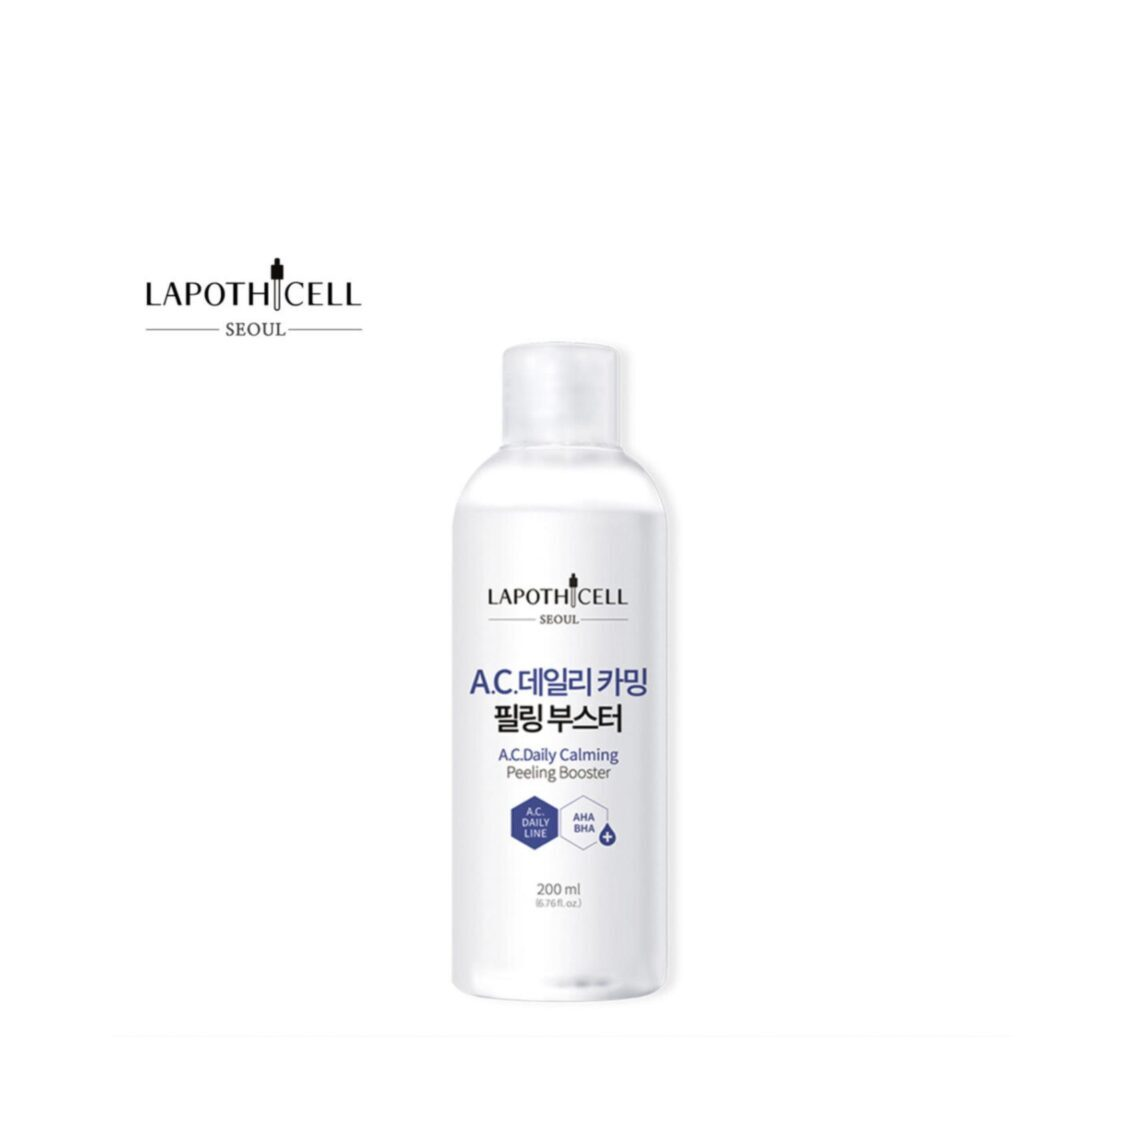 Lapothicell AC Daily Calming Peeling Booster 200ml